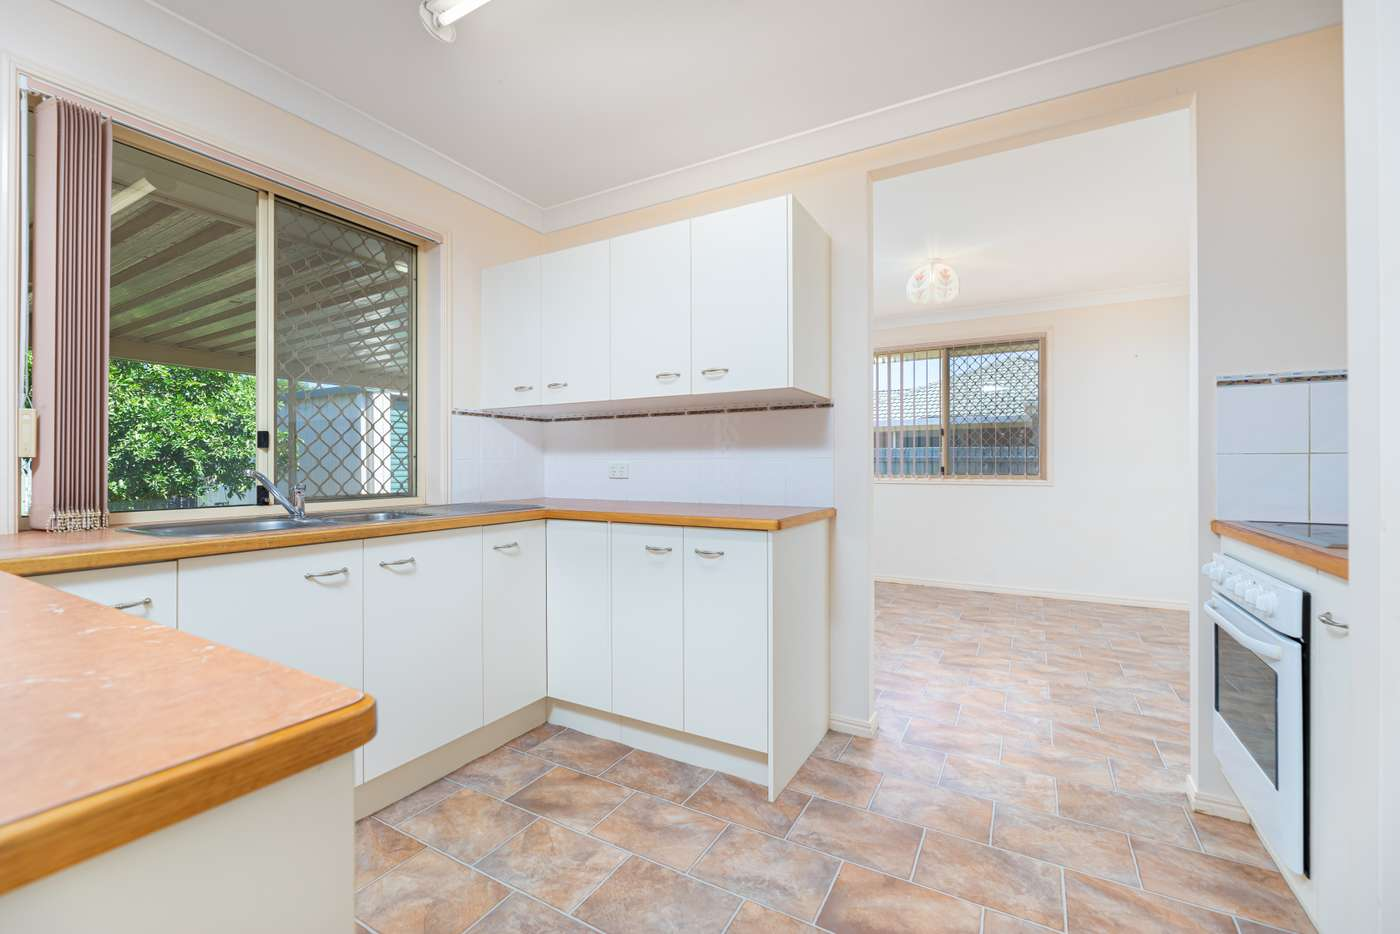 Sixth view of Homely house listing, 3 Carnarvon Court, Upper Caboolture QLD 4510